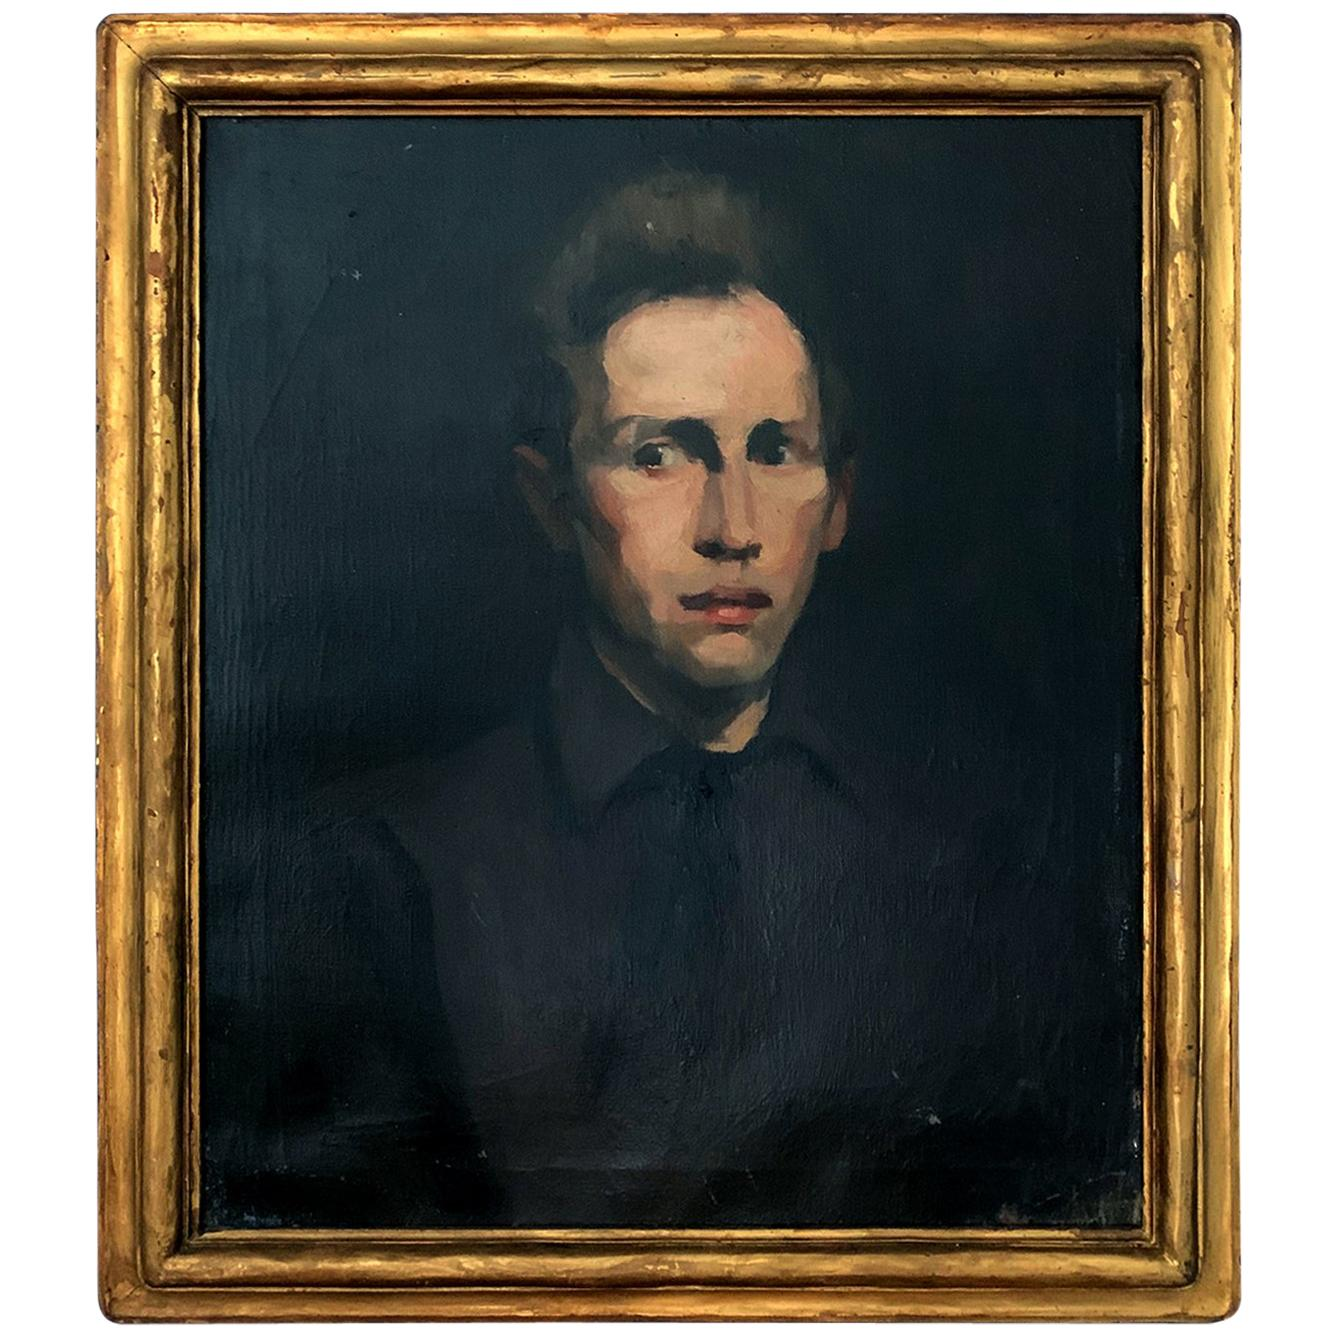 Framed Oil Painting by George Wesley Bellows